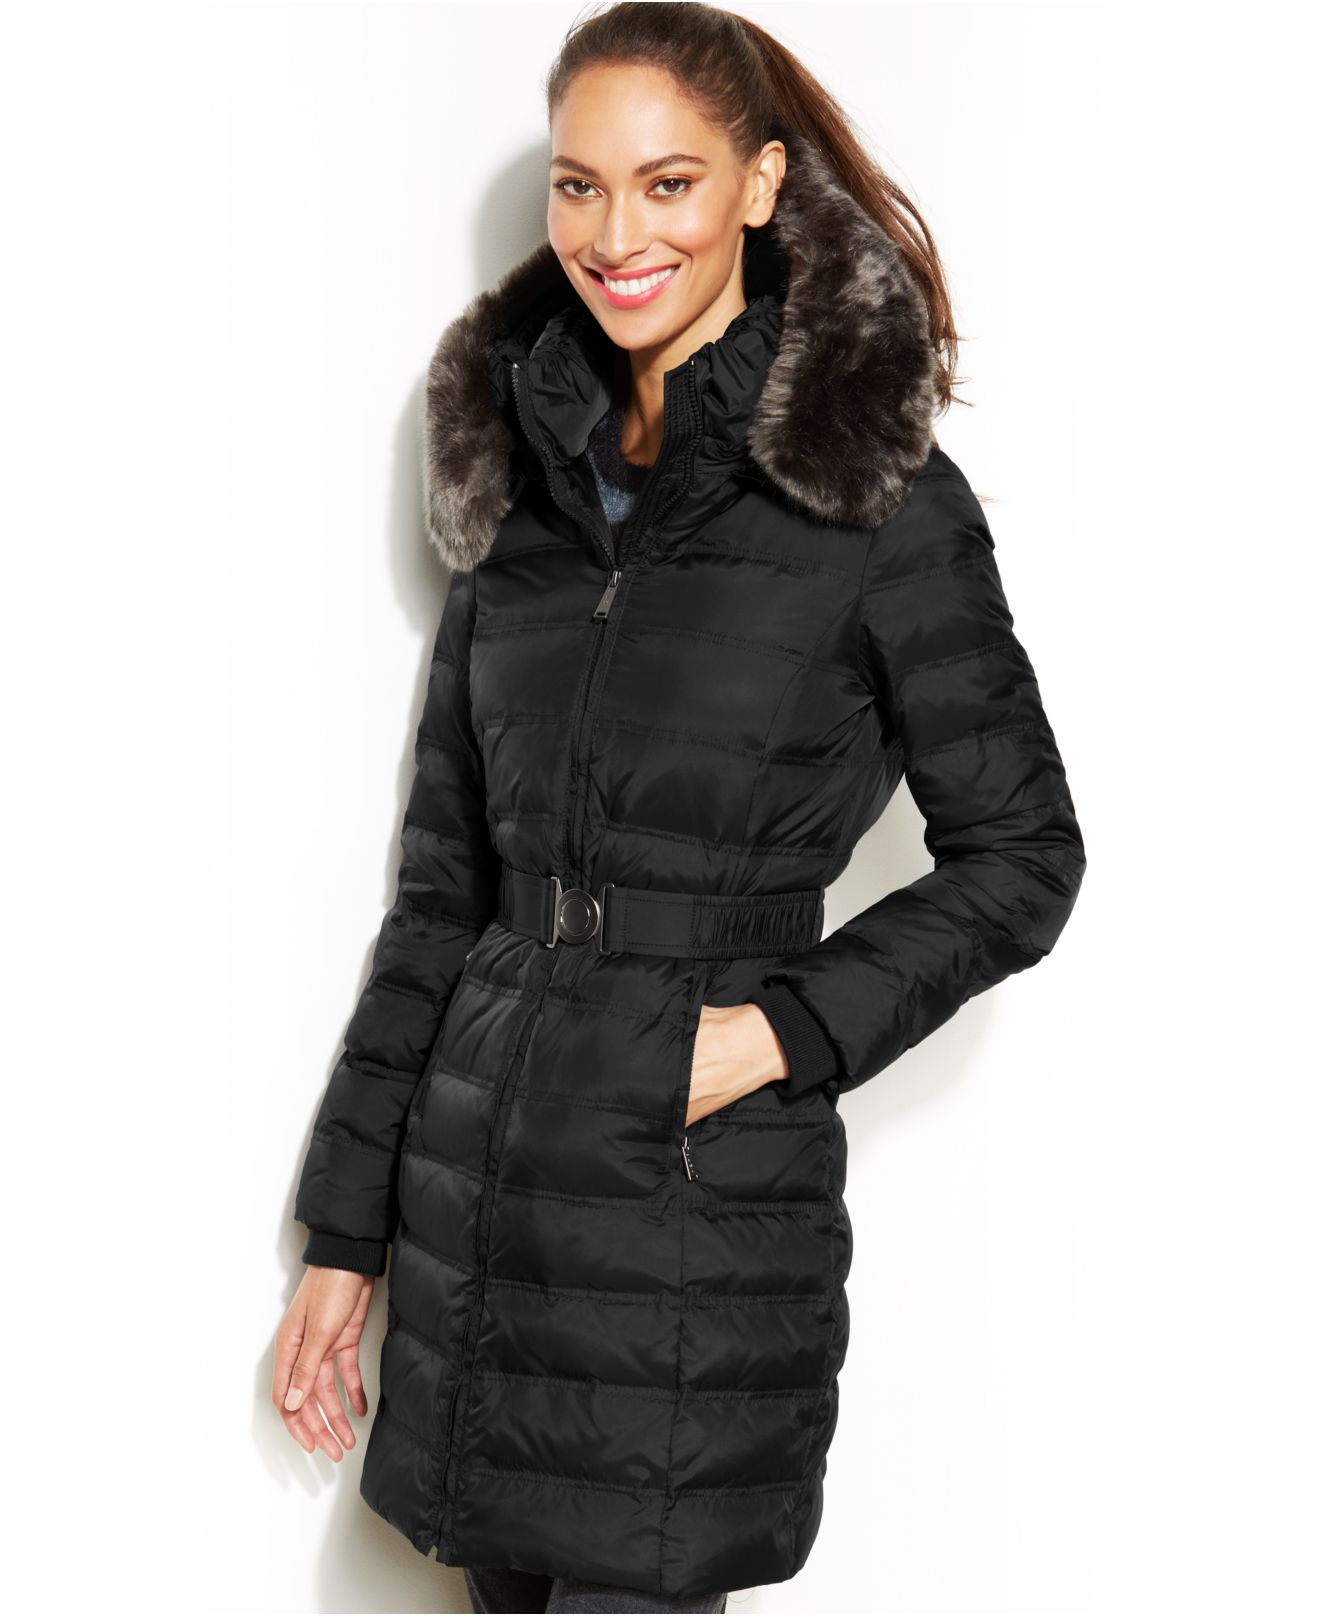 Belted Down Coat With Hood - Jacketin-3679